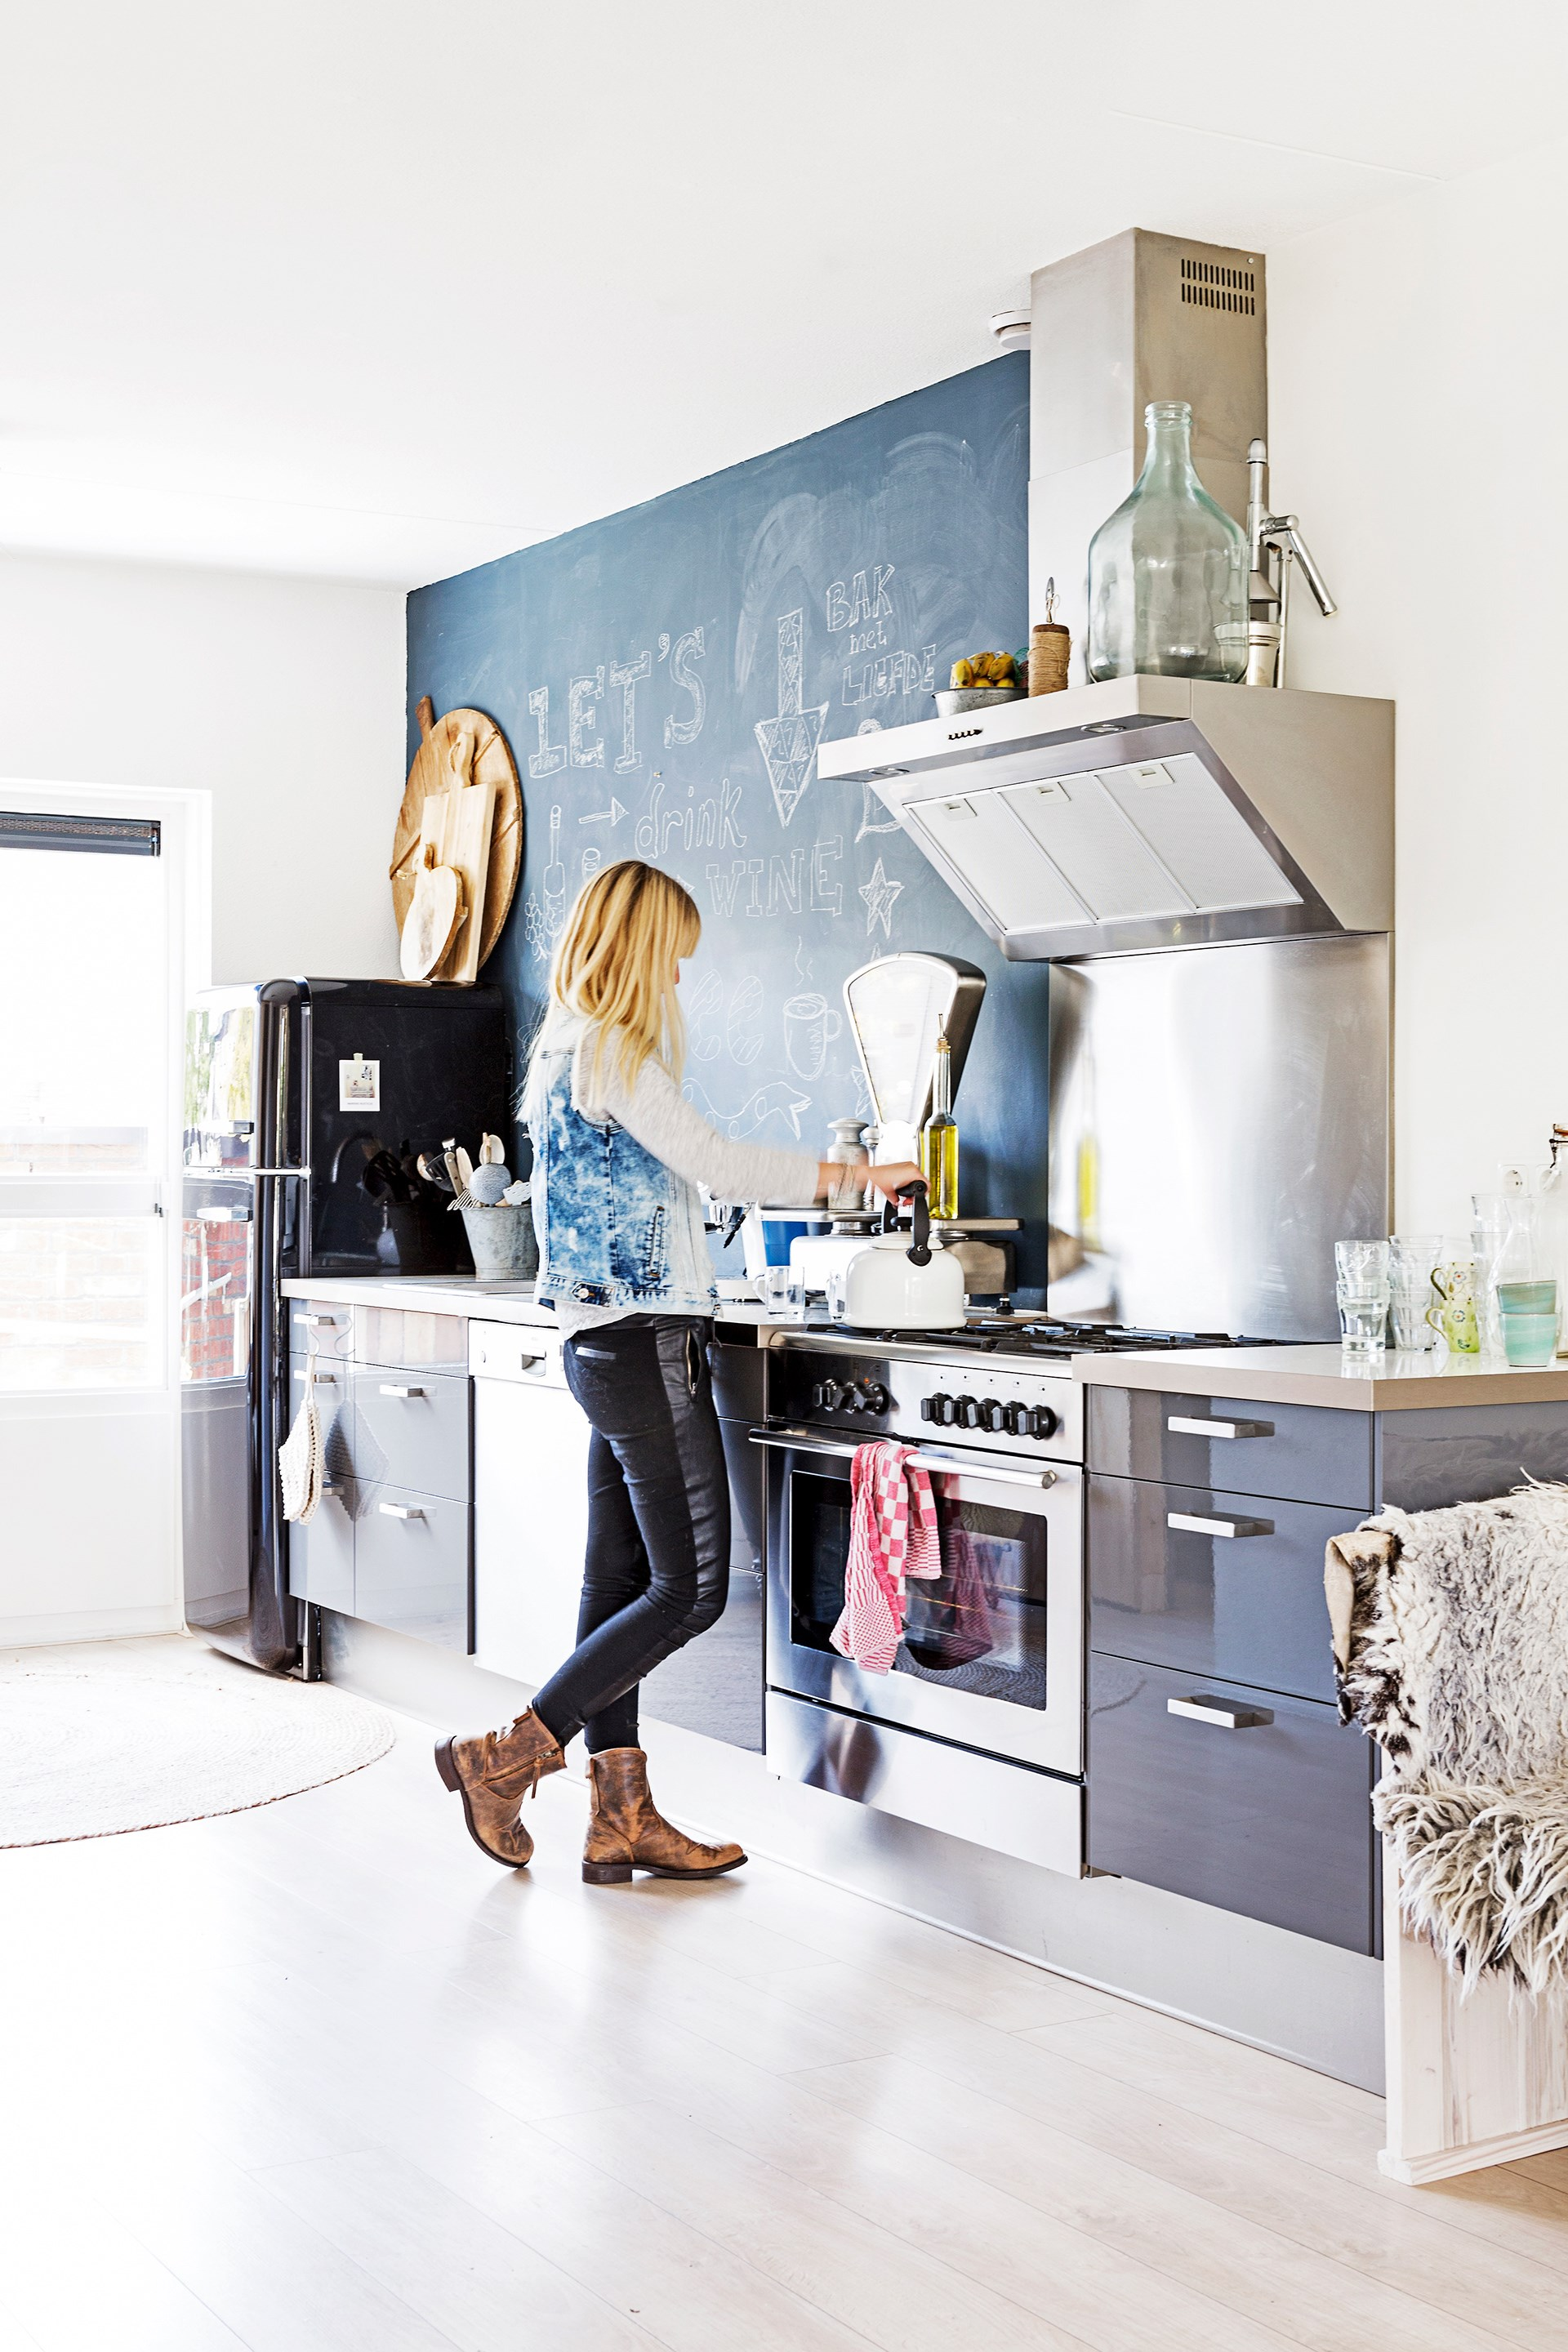 """Marieke makes a cuppa in her industrial-style [Ikea](http://www.ikea.com.au/?utm_campaign=supplier/ target=""""_blank"""") kitchen. Fun notes and recipes are written on the chalkboard wall."""